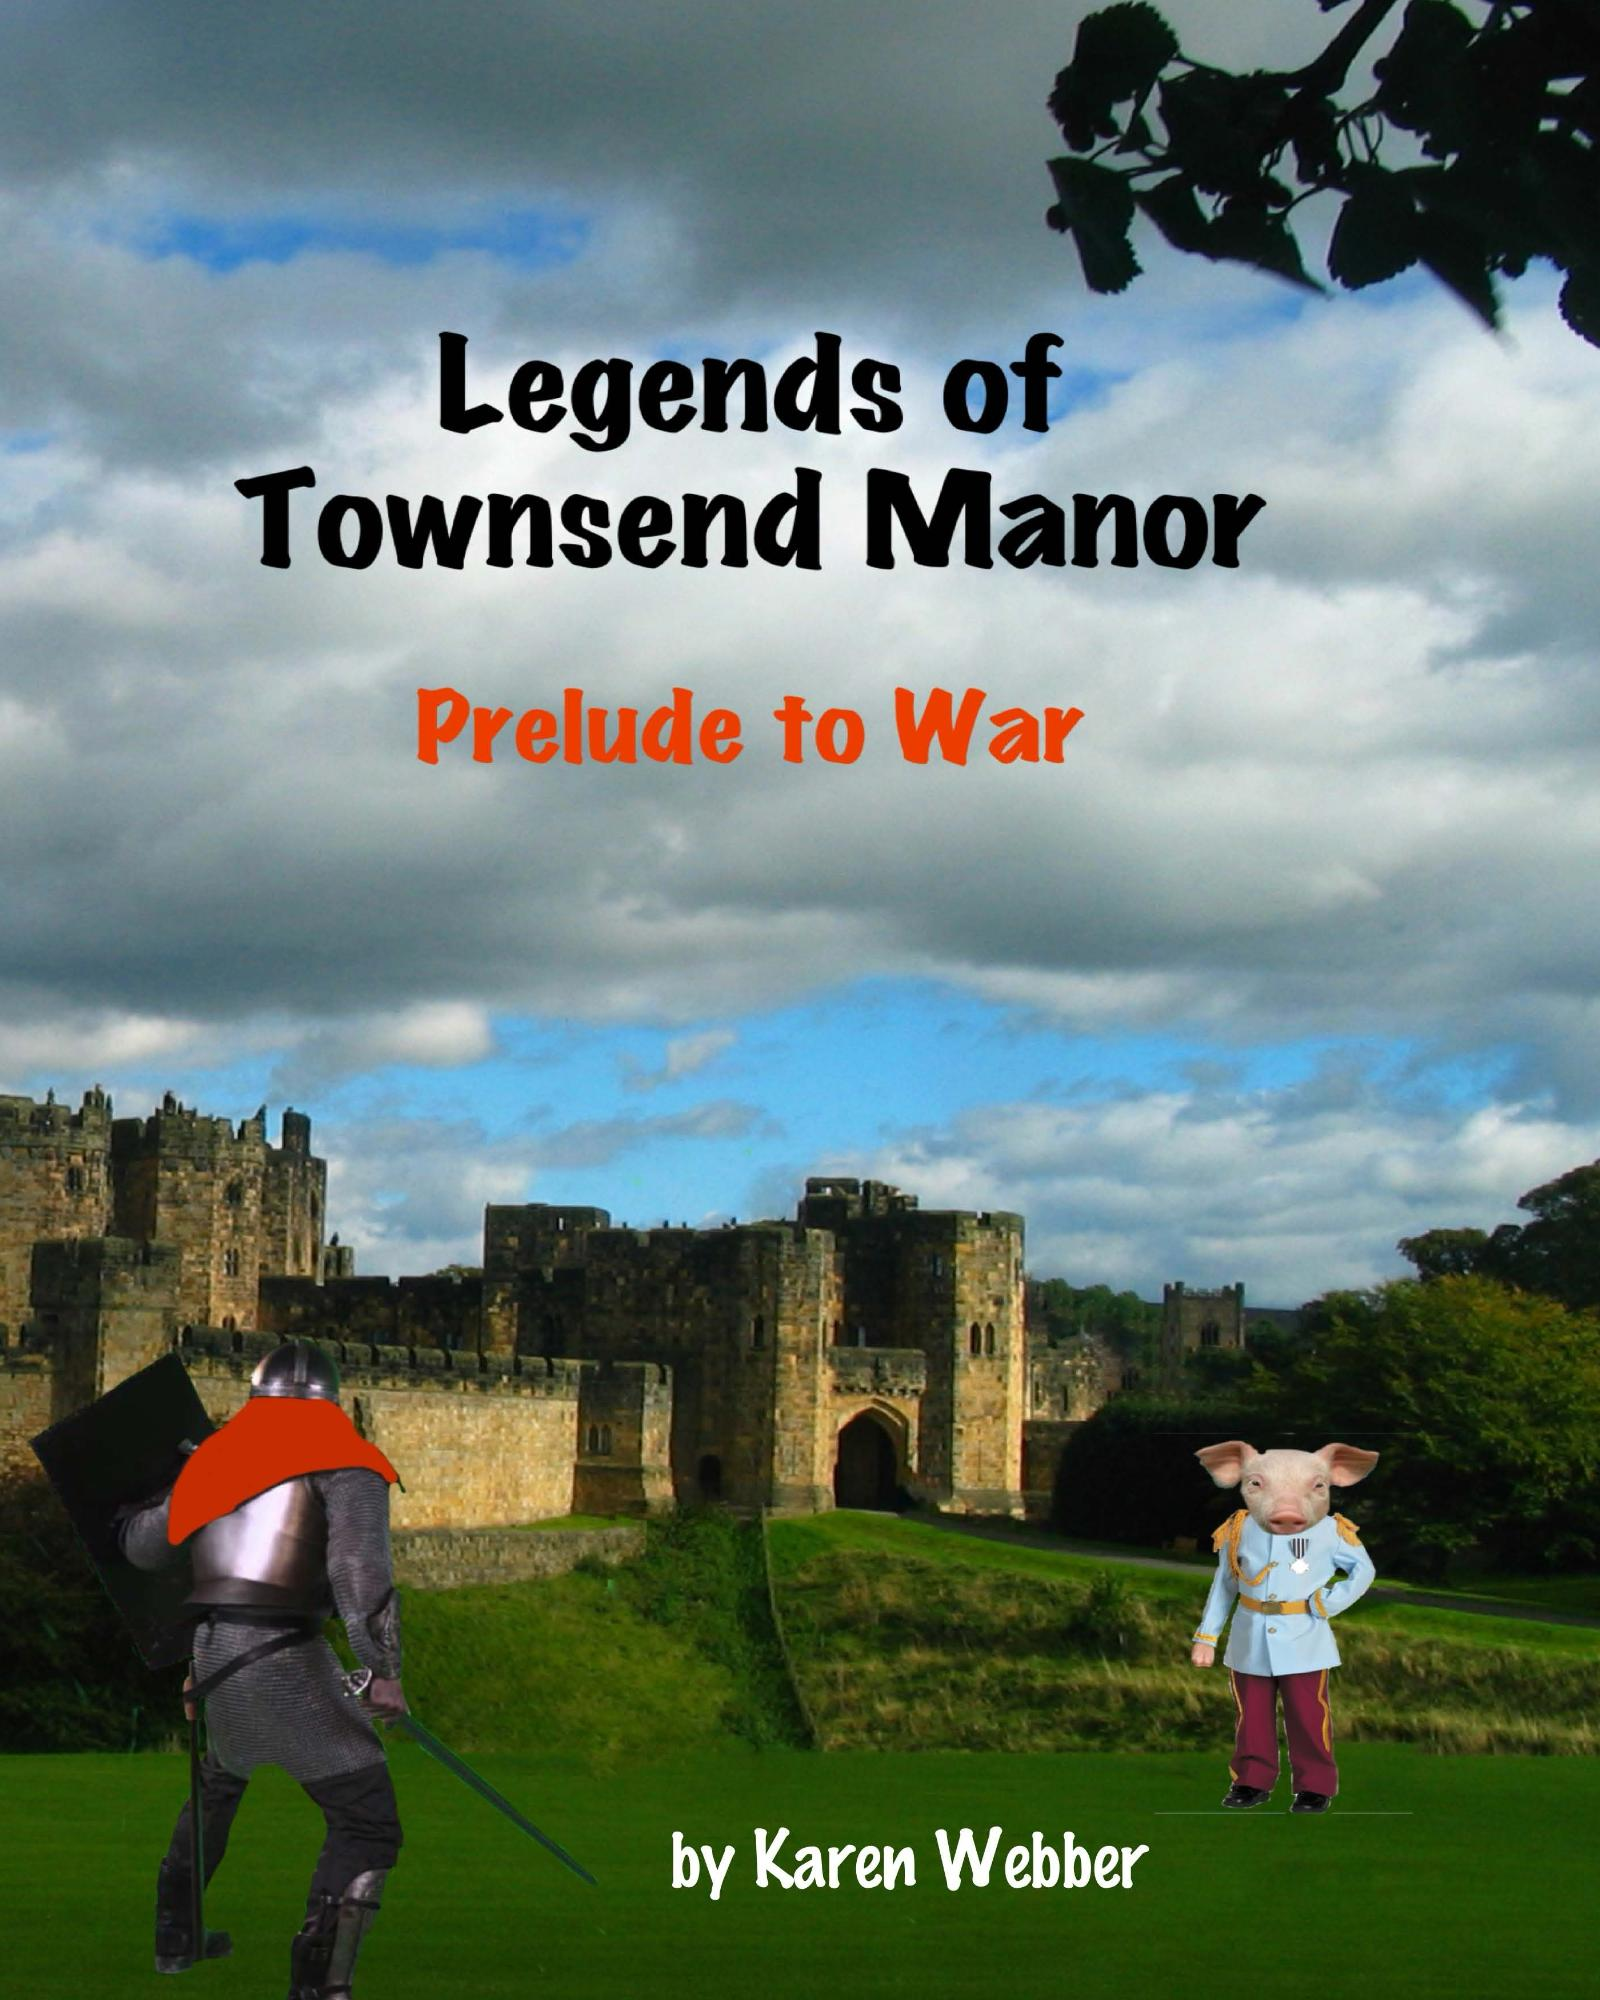 Legends of Townsend Manor - by Karen Webber